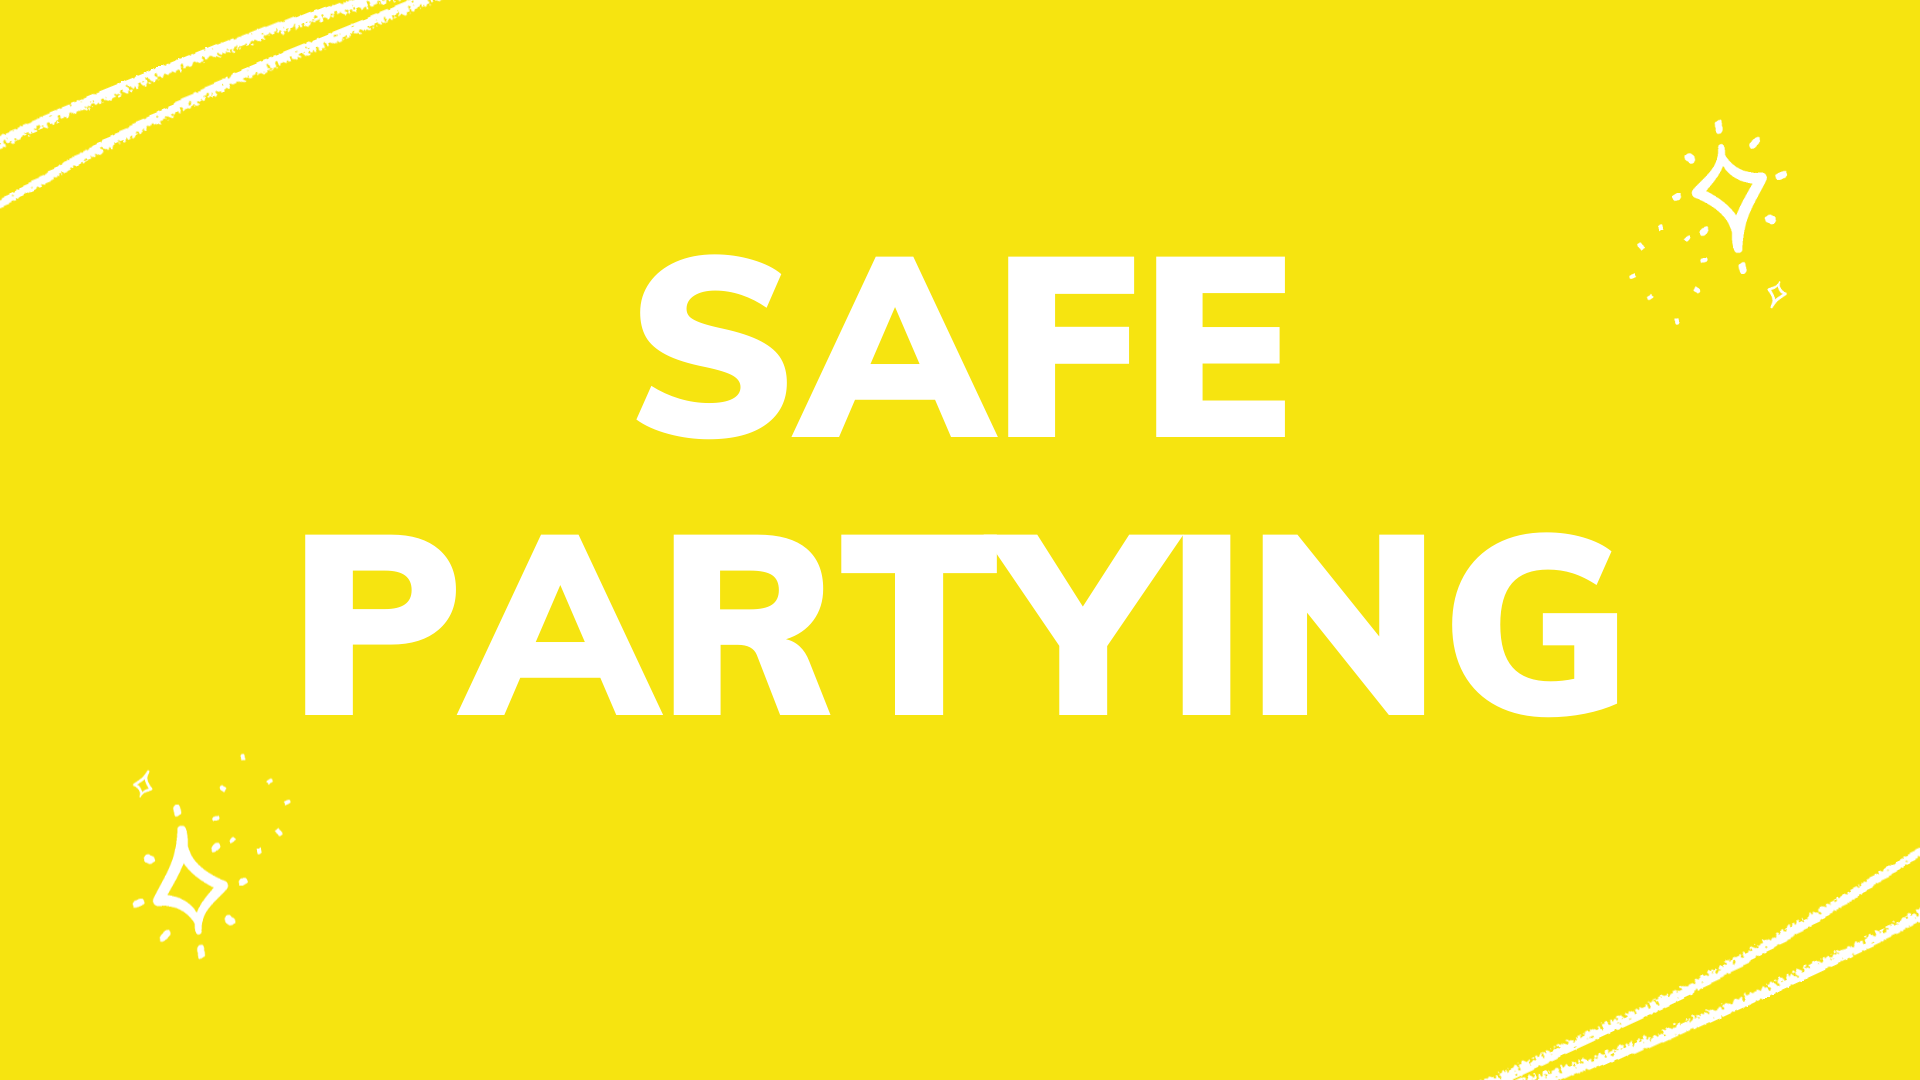 safe partying